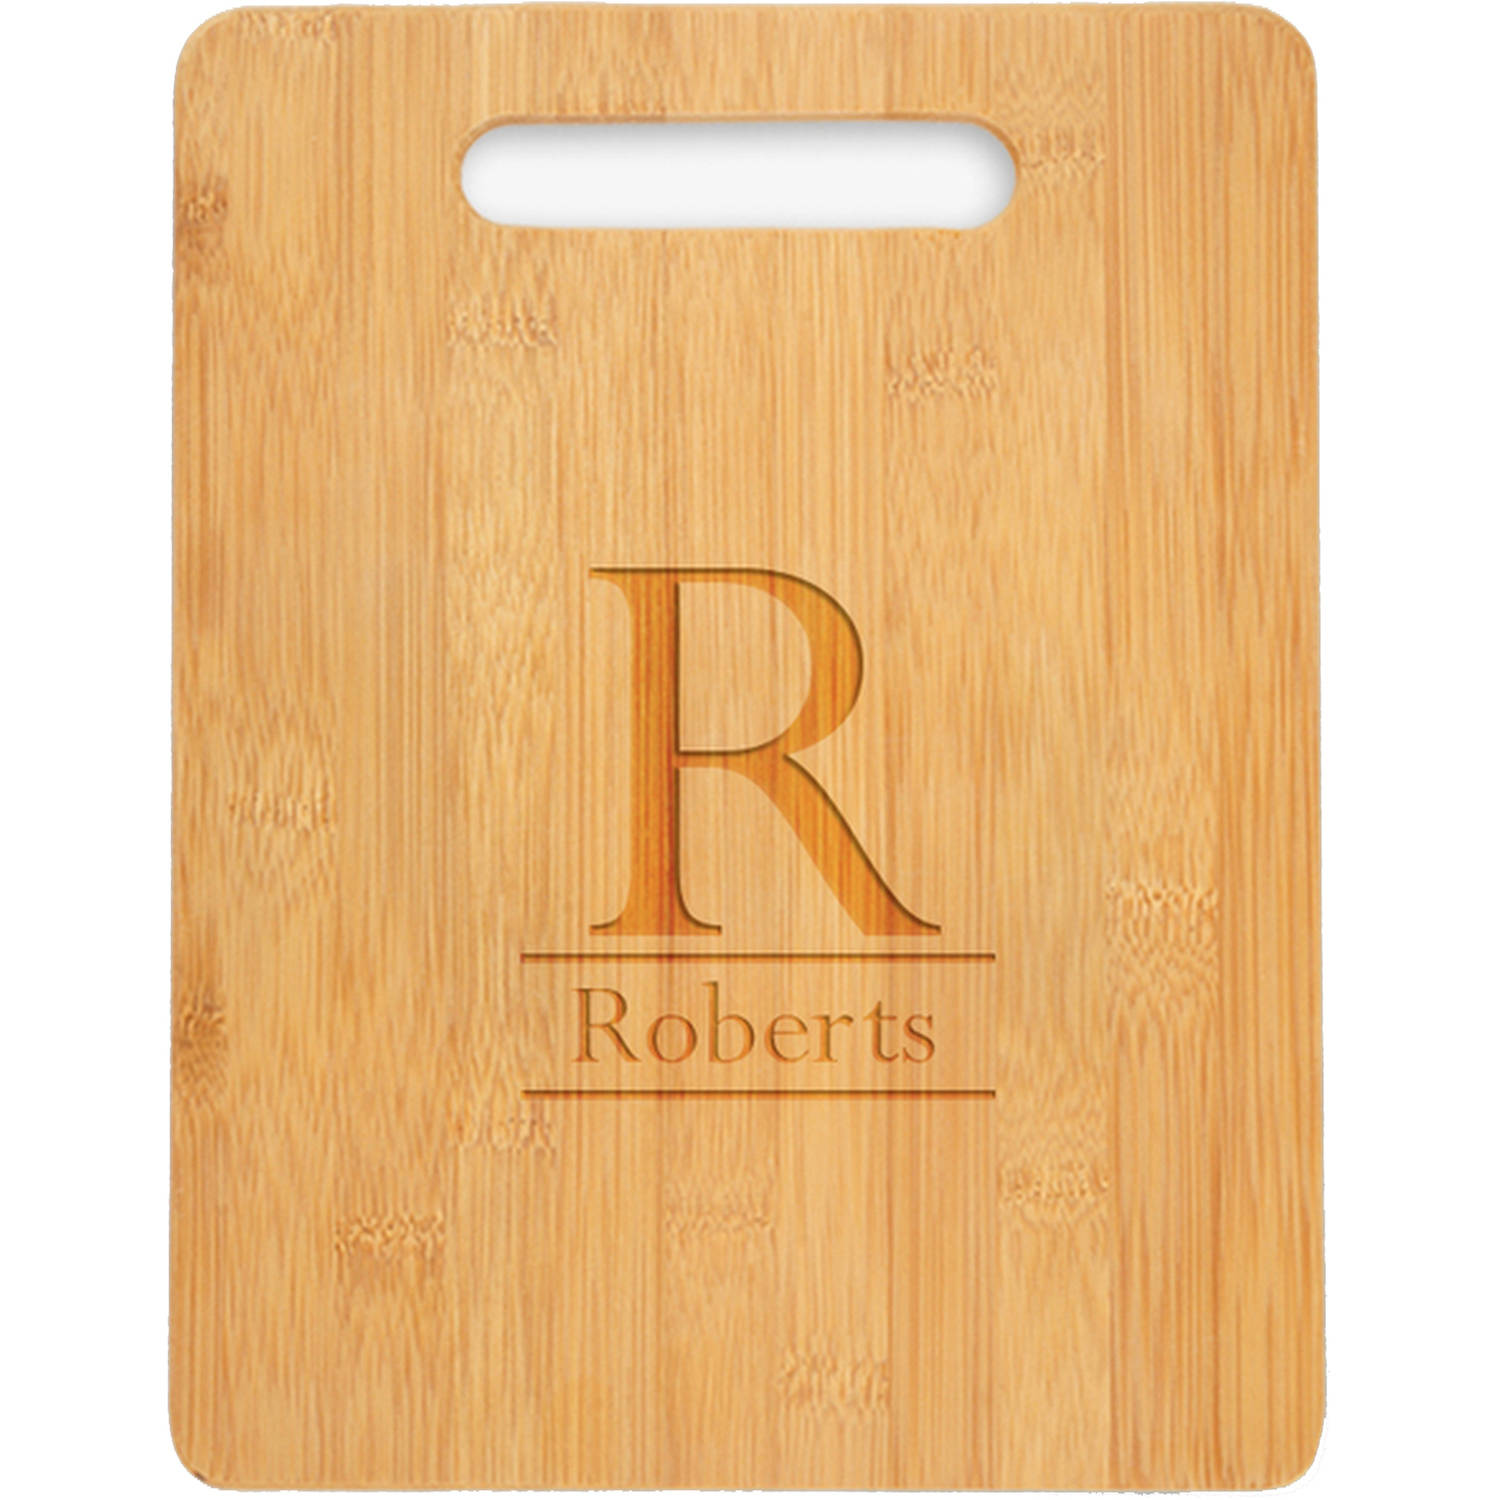 "Personalized Initial Wooden Cutting Board, Sizes 12.5"" x 11.5"" and 12.5"" x 13.75"""